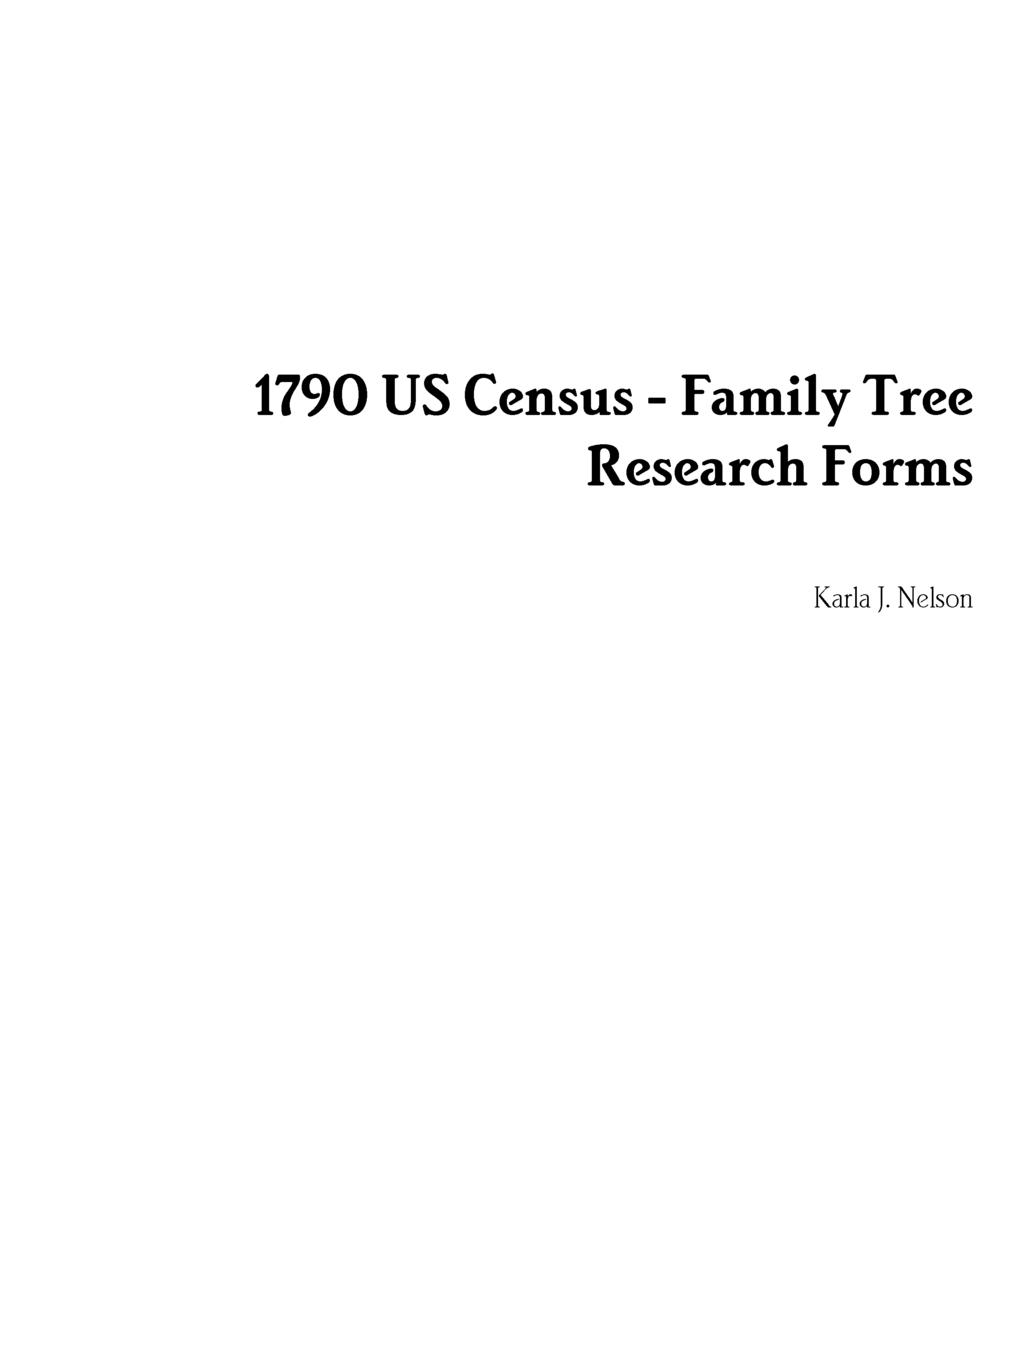 Karla J. Nelson 1790 US Census - Family Tree Research Forms barbara delinsky the family tree